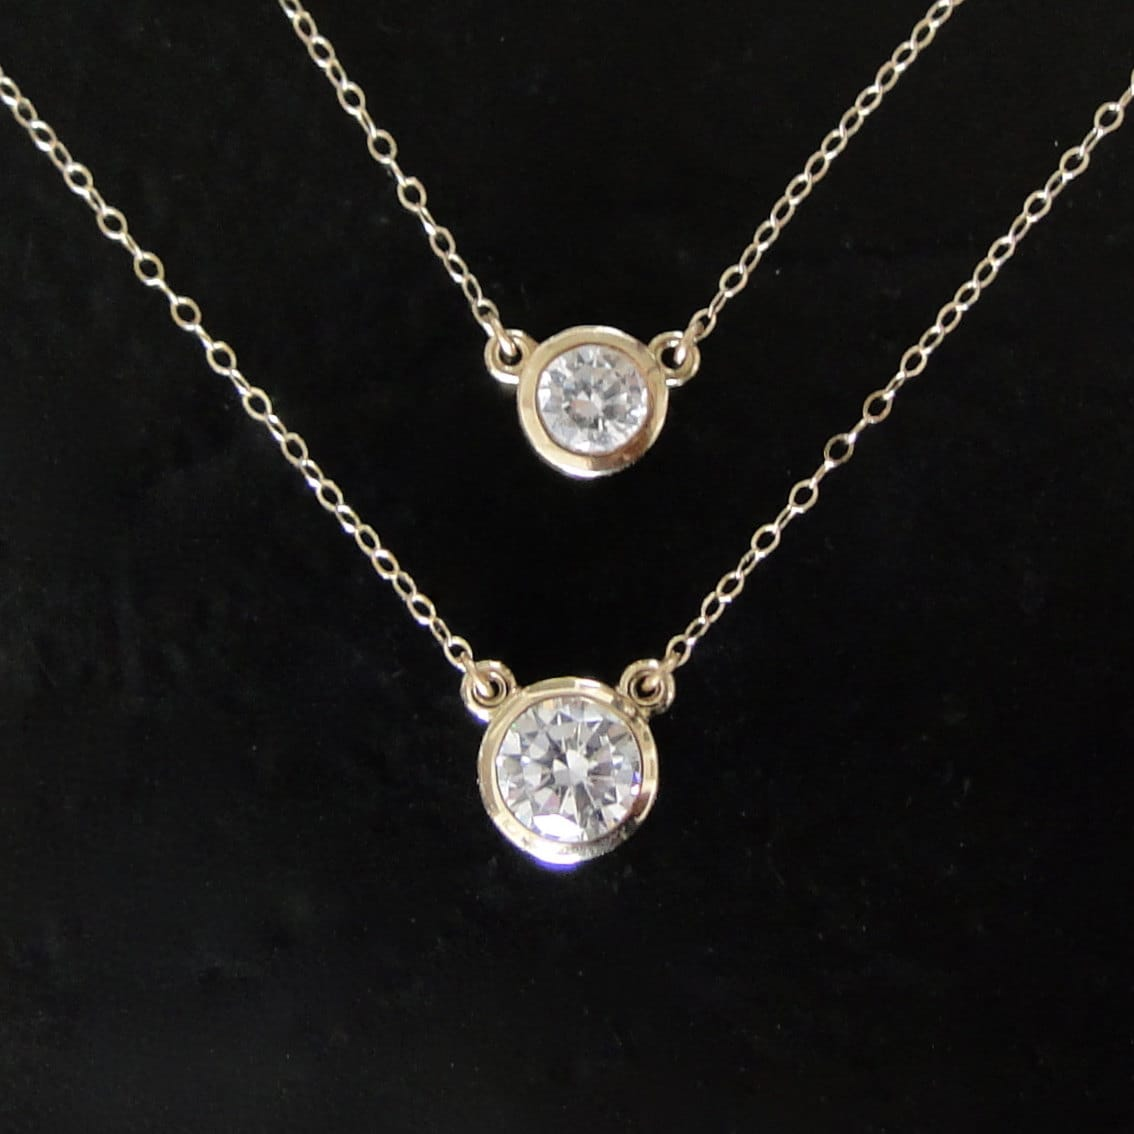 necklace baunat necklaces en design gw carat diamond ps in platinum